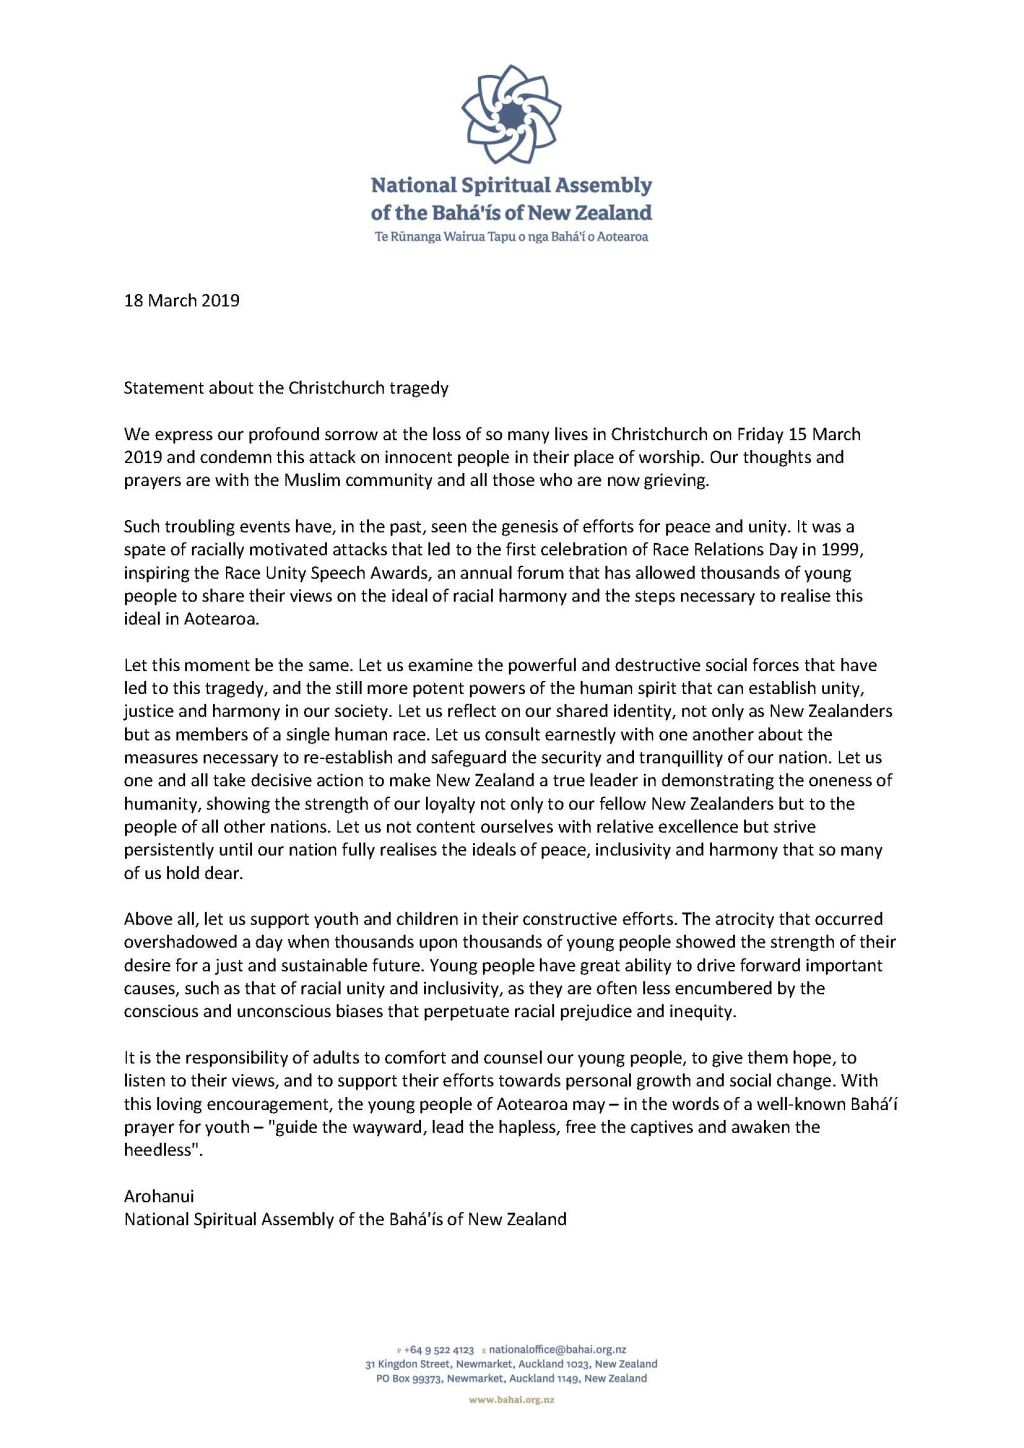 Public statement by the national spiritual assembly of new zealand march 2019